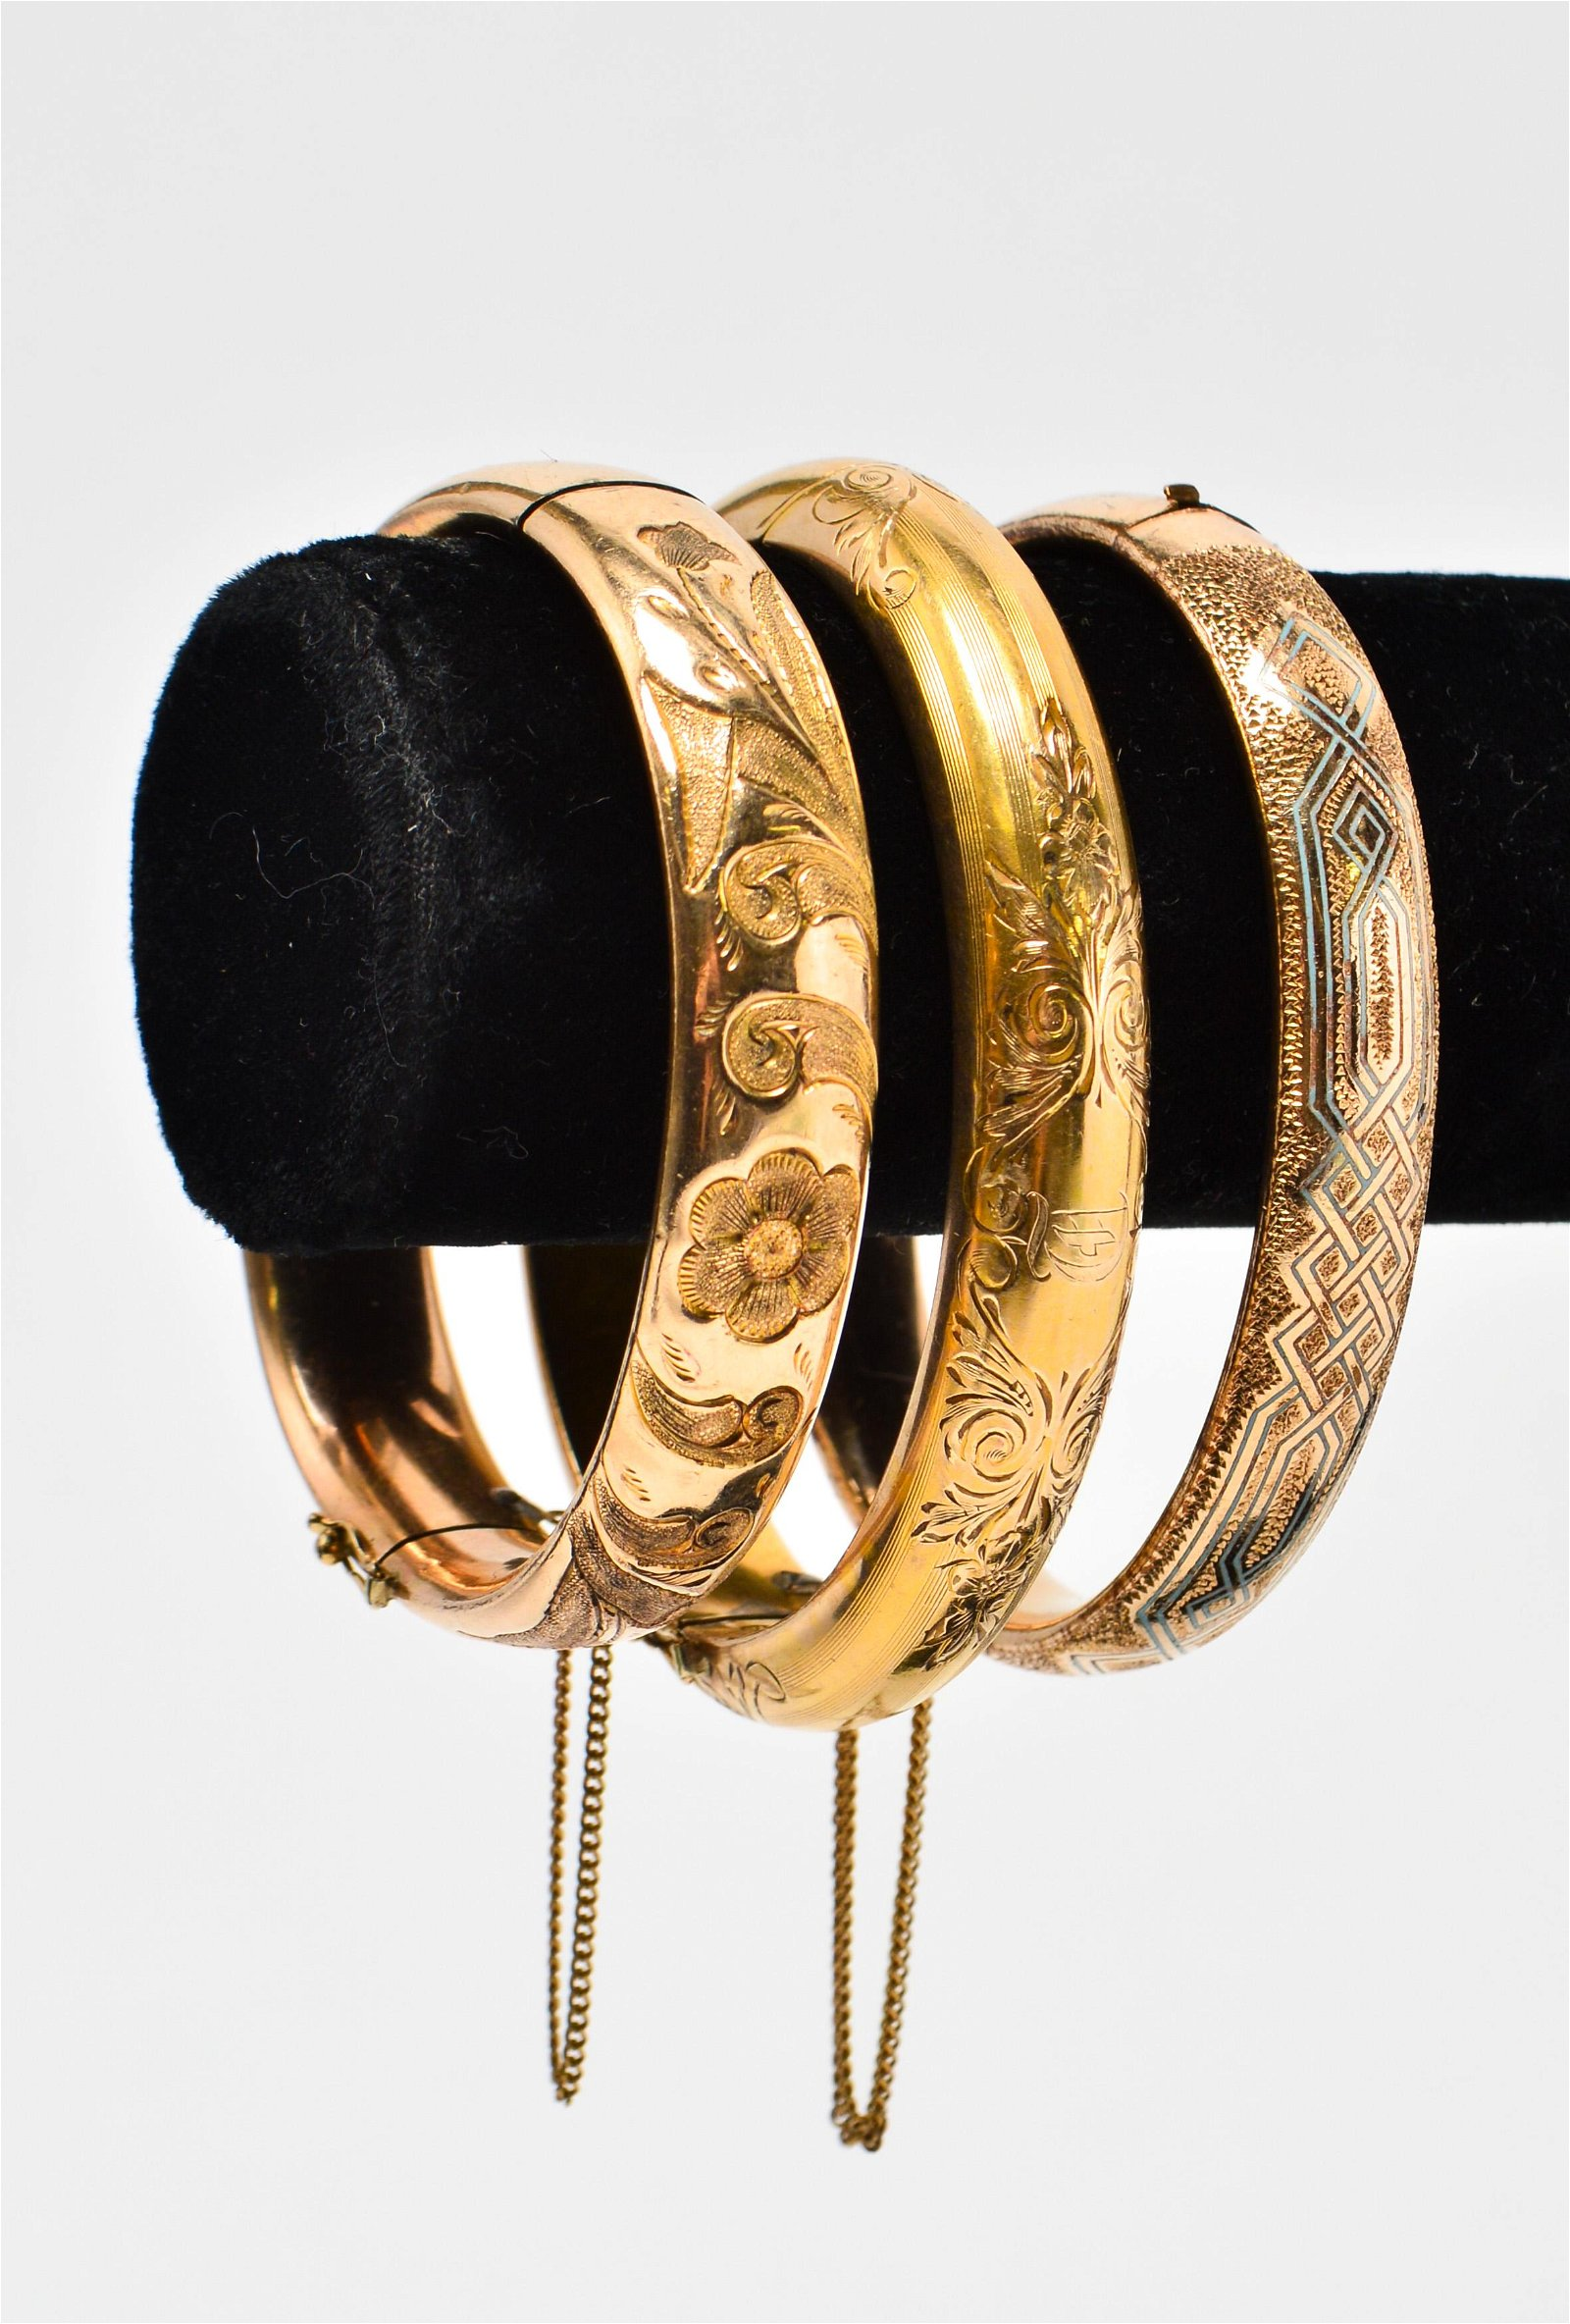 Gold-Filled and Gold-Plated Engraved Bangles, 3